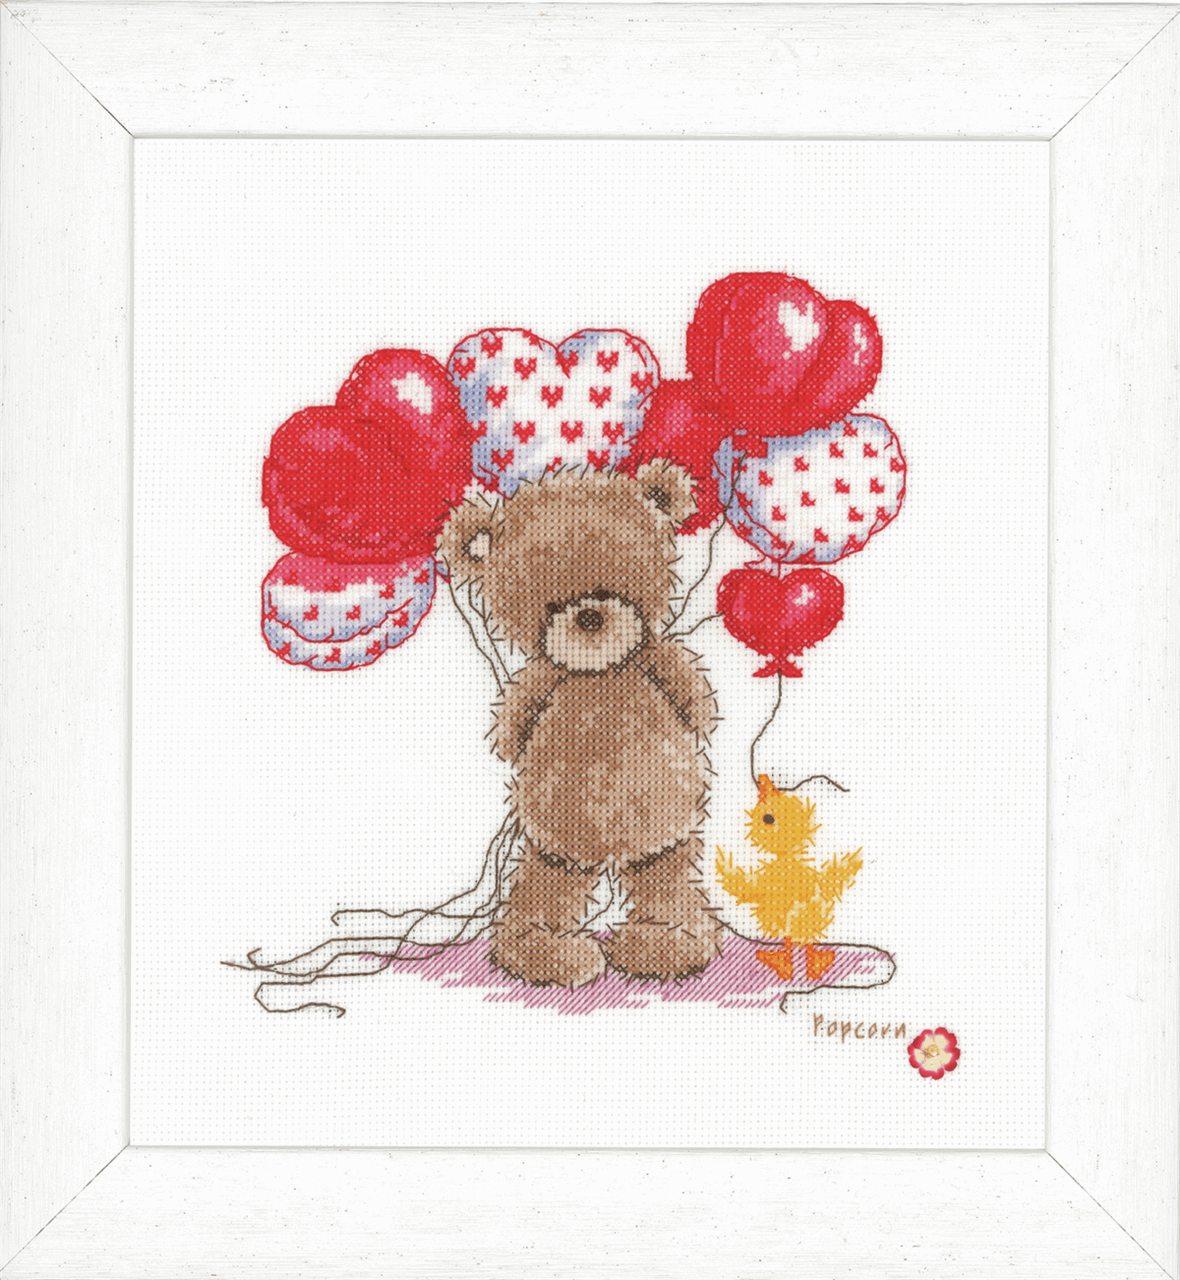 Picture of Popcorn: Counted X Stitch Kit: Beautiful Balloons